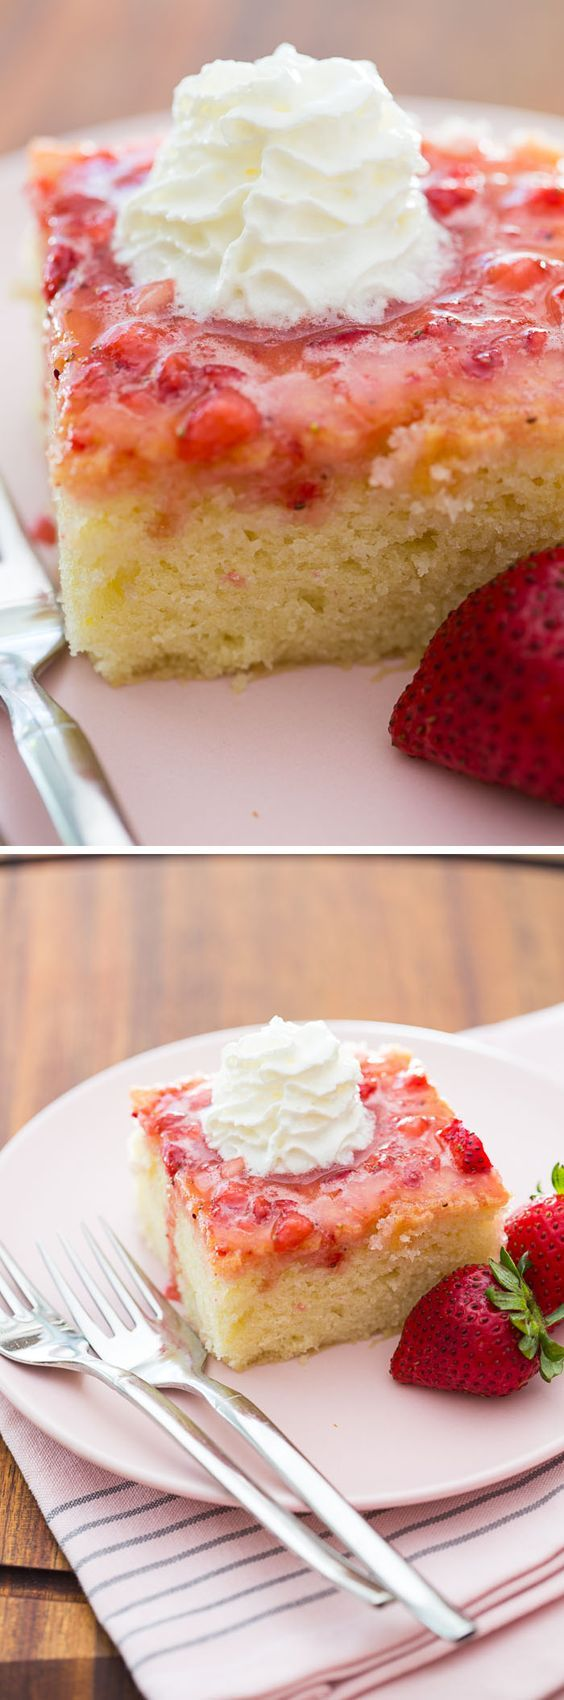 This tender little Strawberry Snack Cake recipe is super quick and easy -- and super delicious, with the flavor of fresh strawberries and whipped cream!